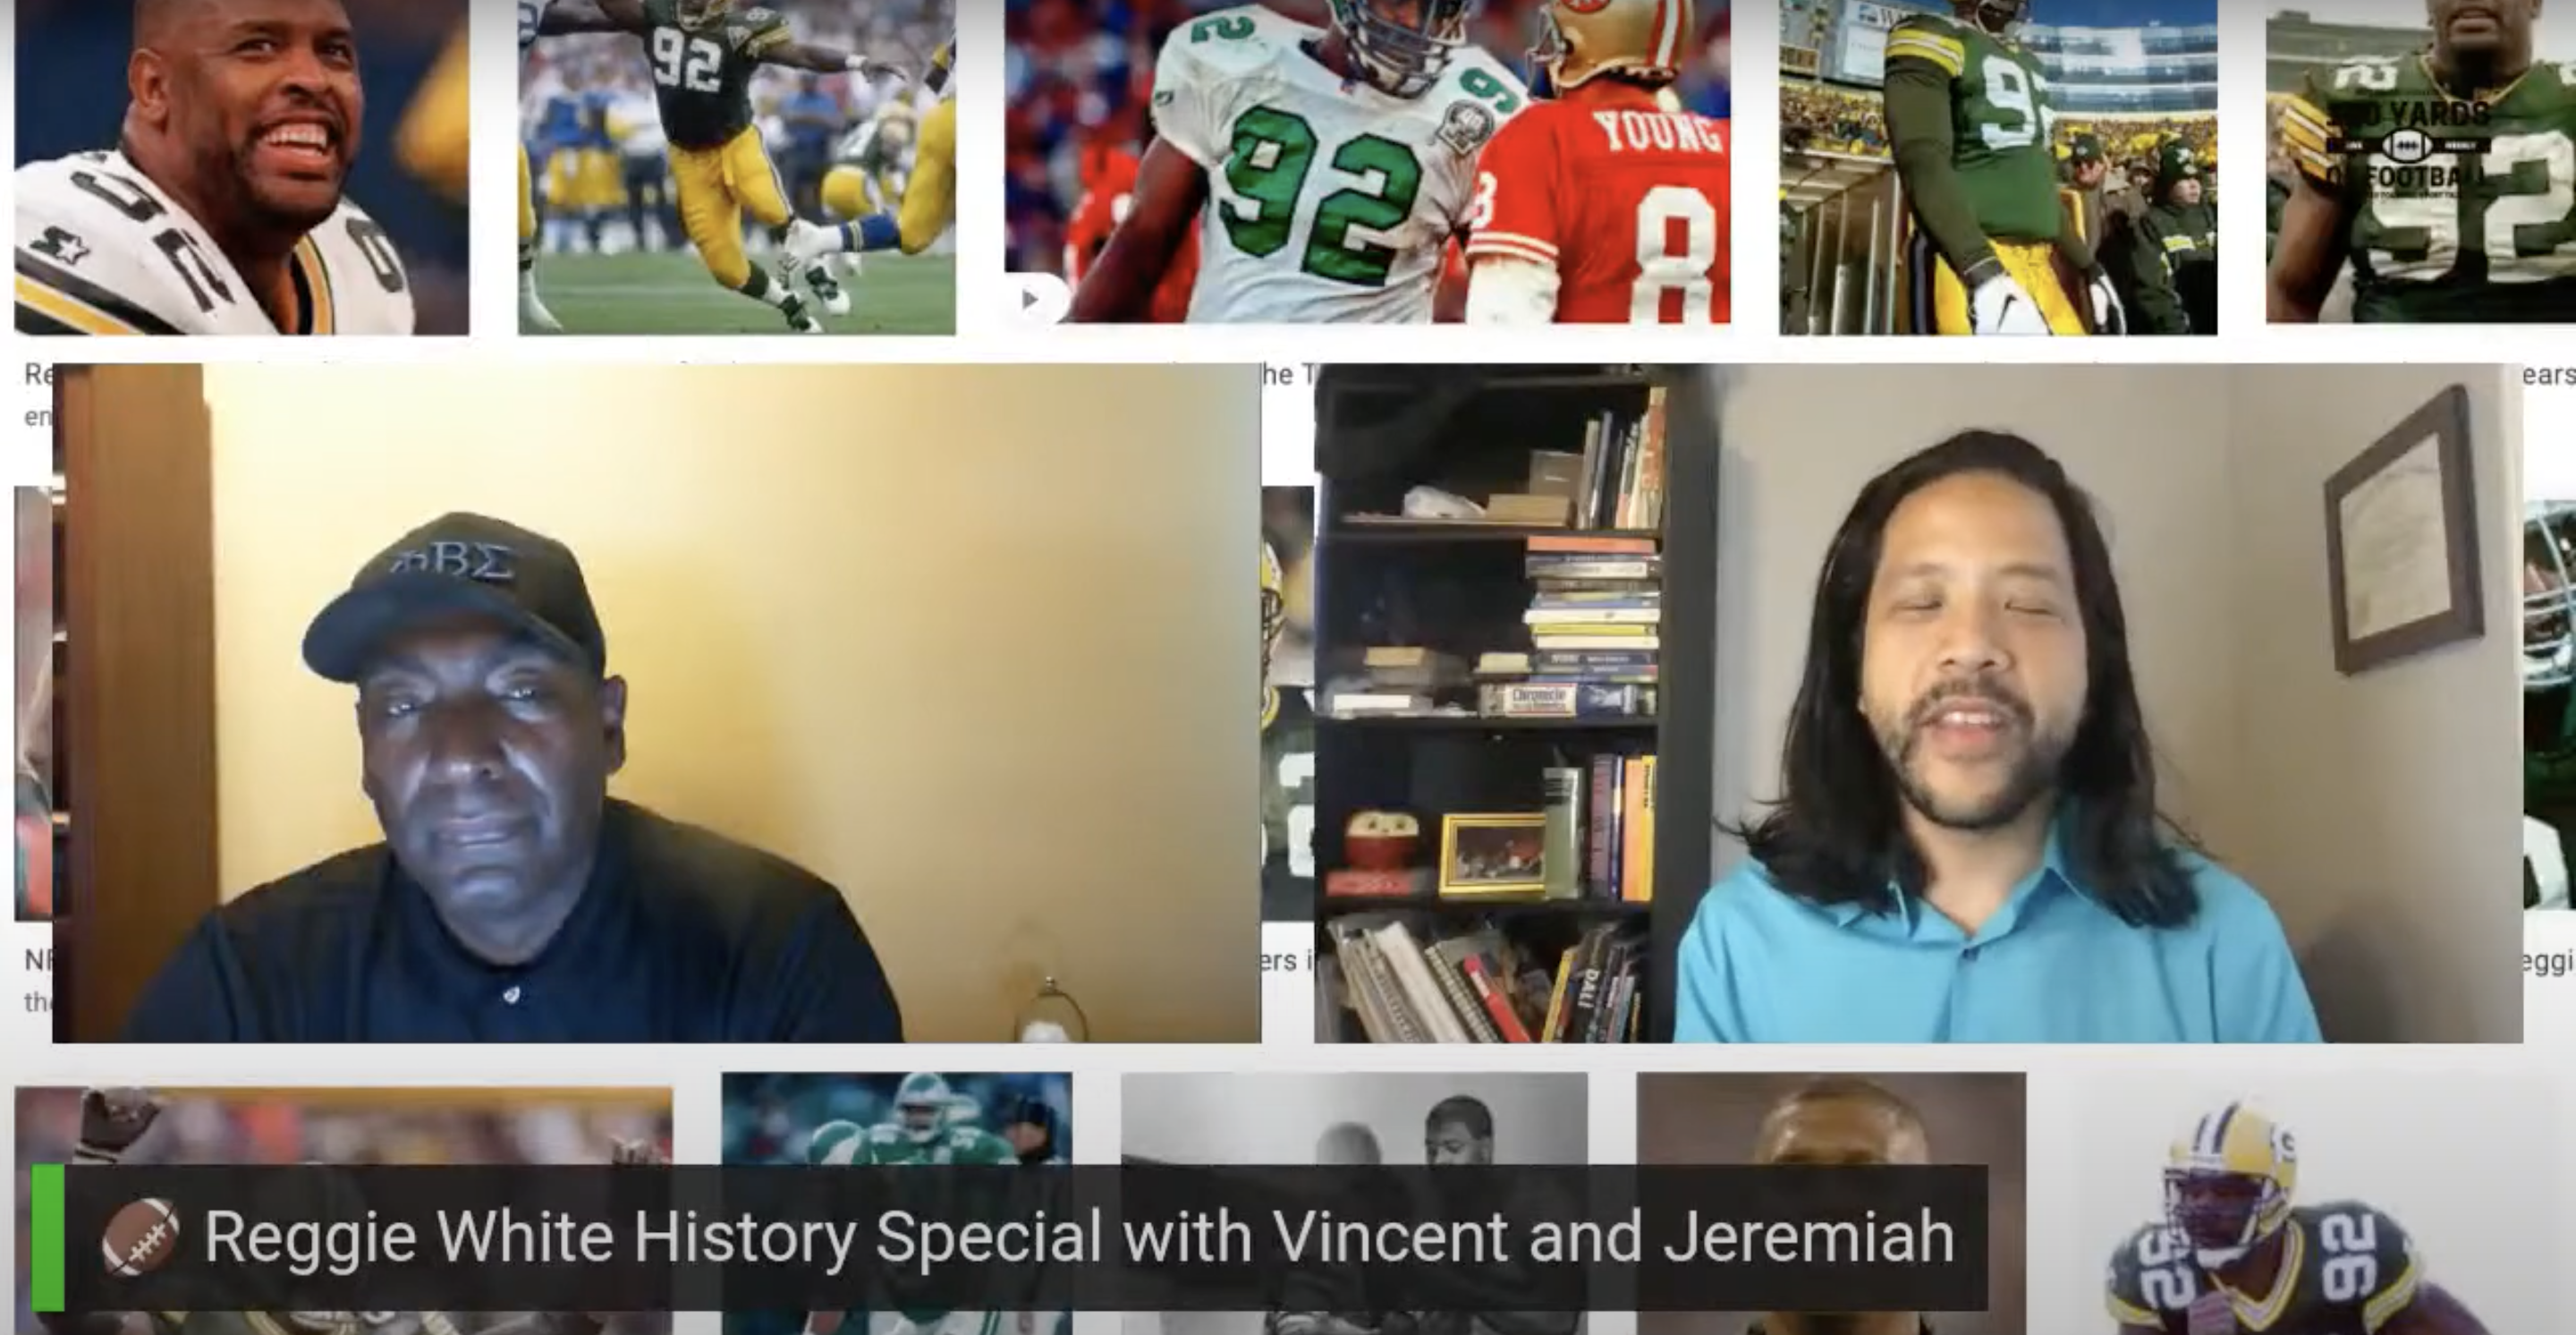 🏈 Reggie White History Special with Vincent and Jeremiah